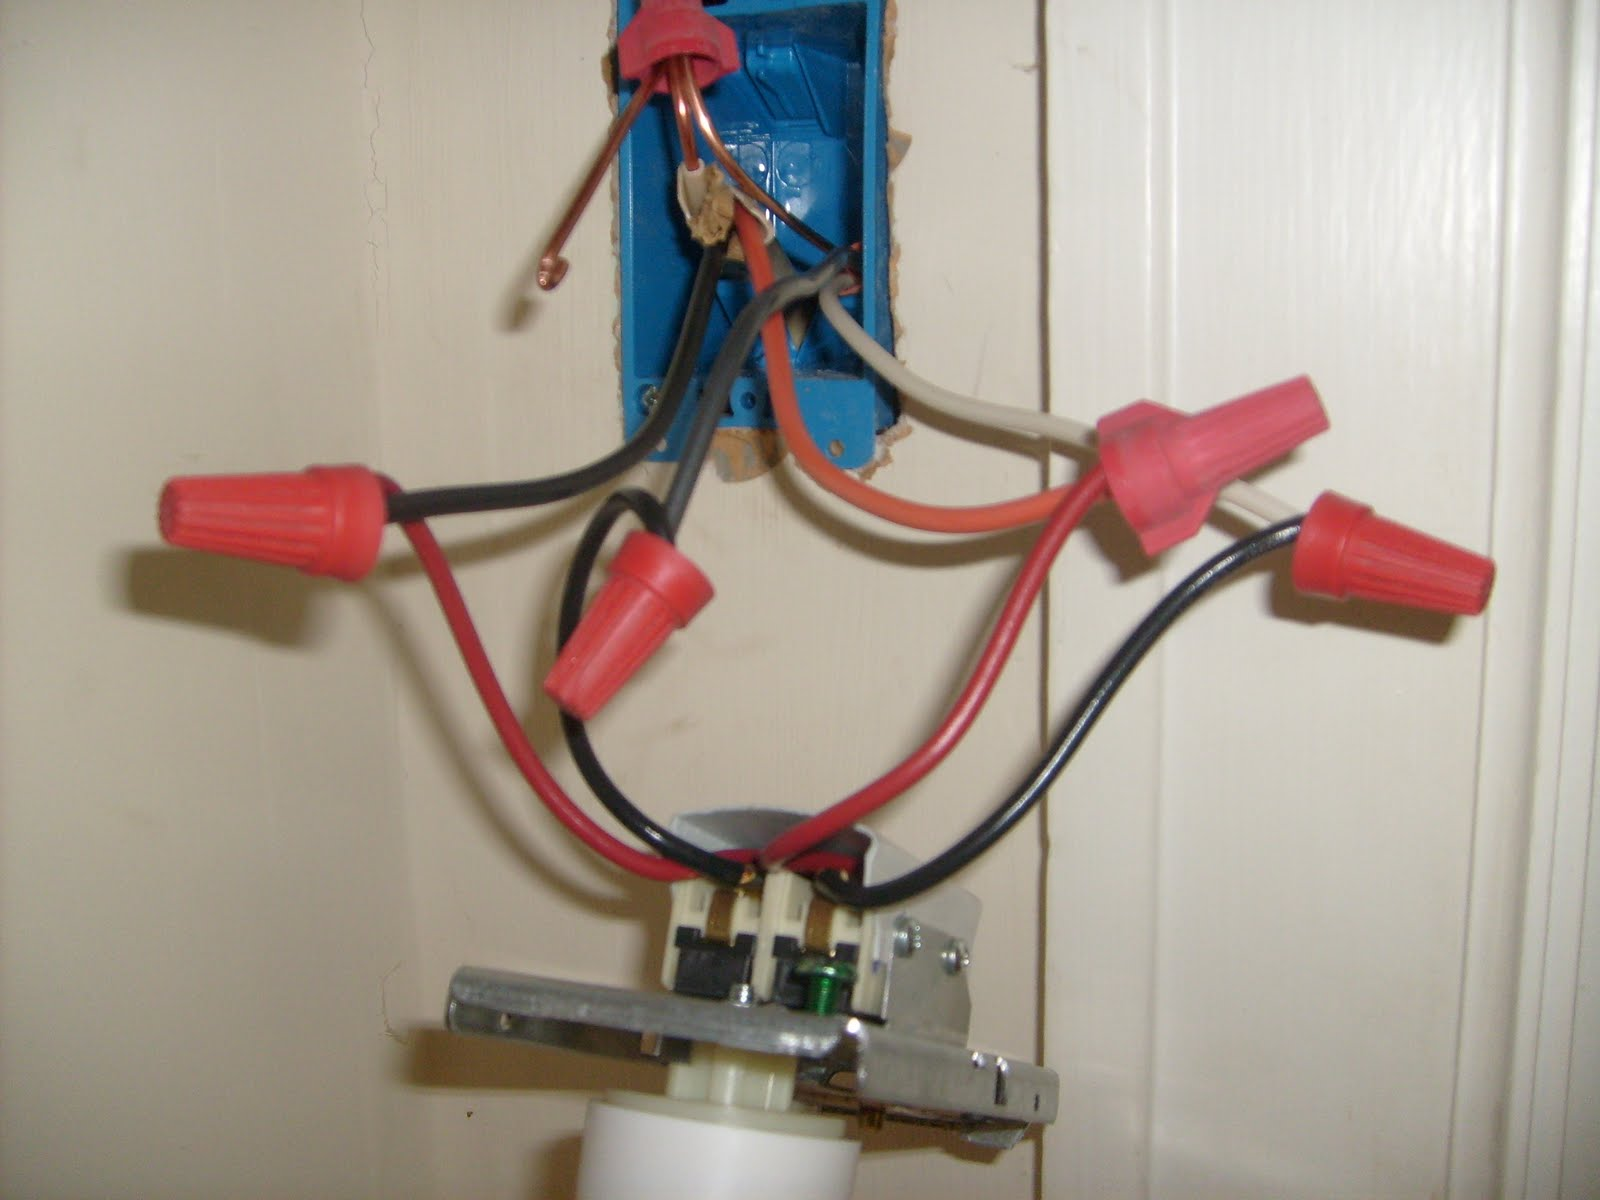 hight resolution of thermostat wiring connections ground wire left off for clarity